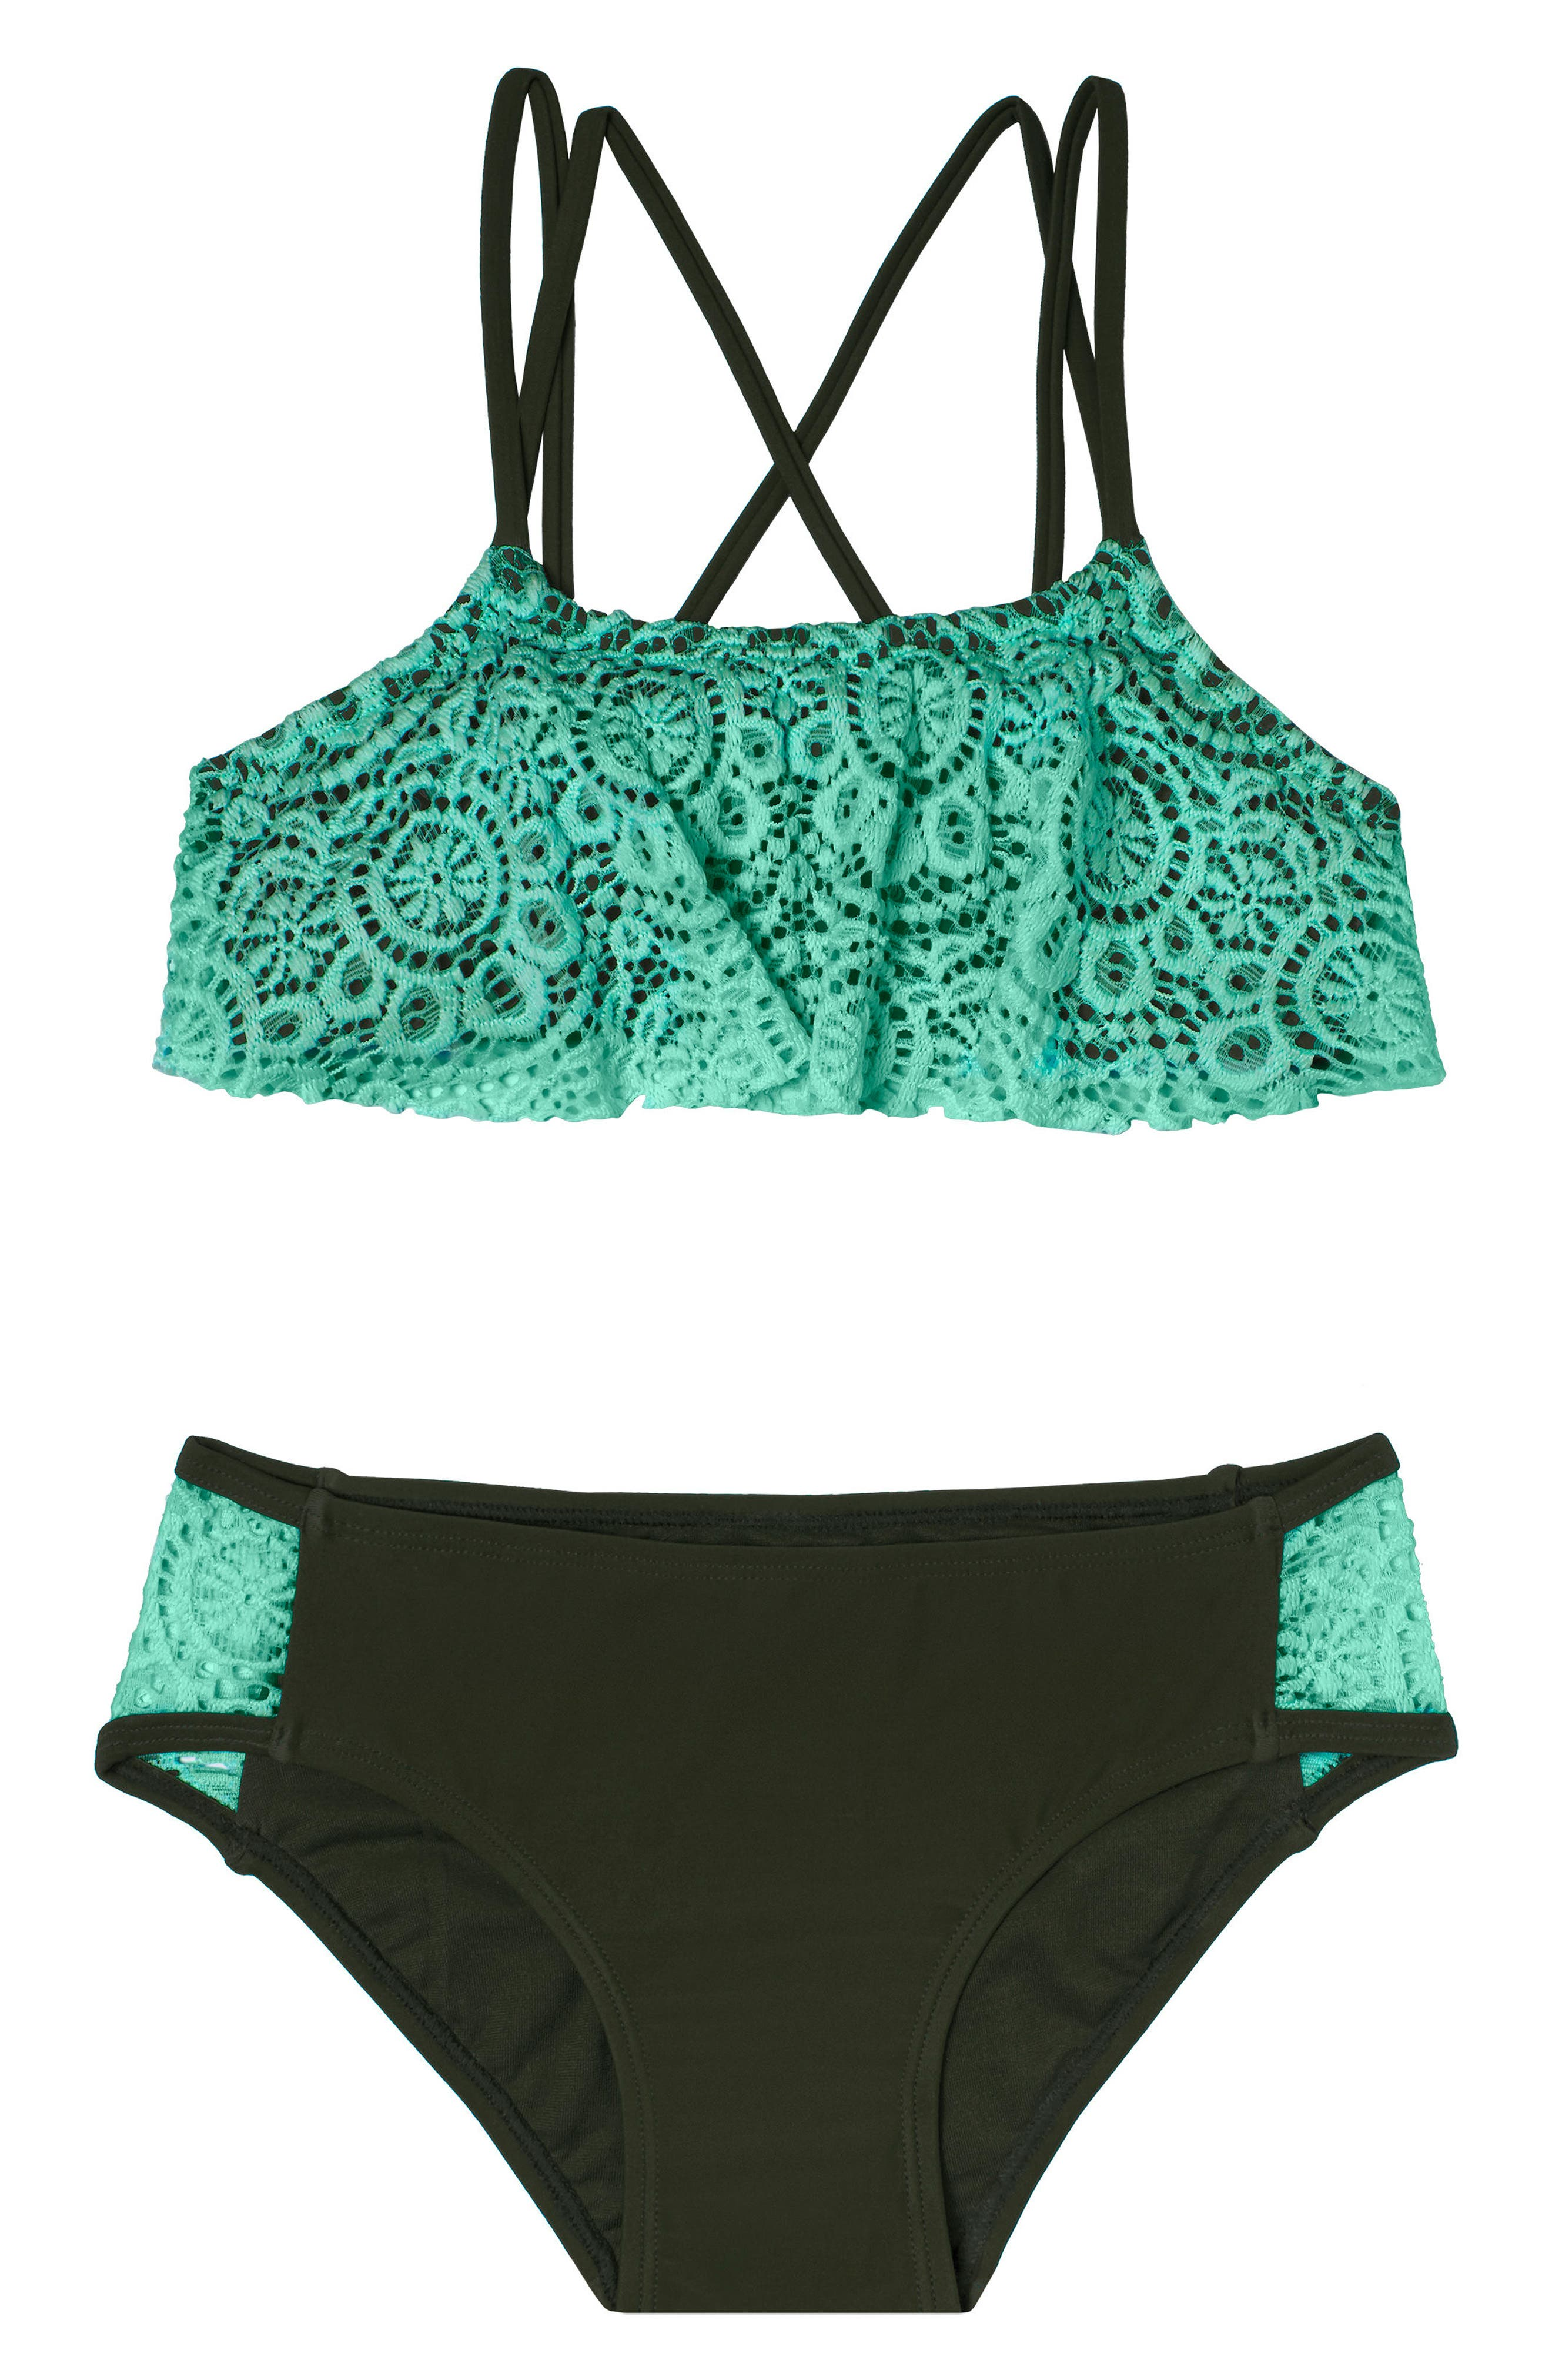 Festival Fantasy Two-Piece Swimsuit,                             Main thumbnail 1, color,                             Green